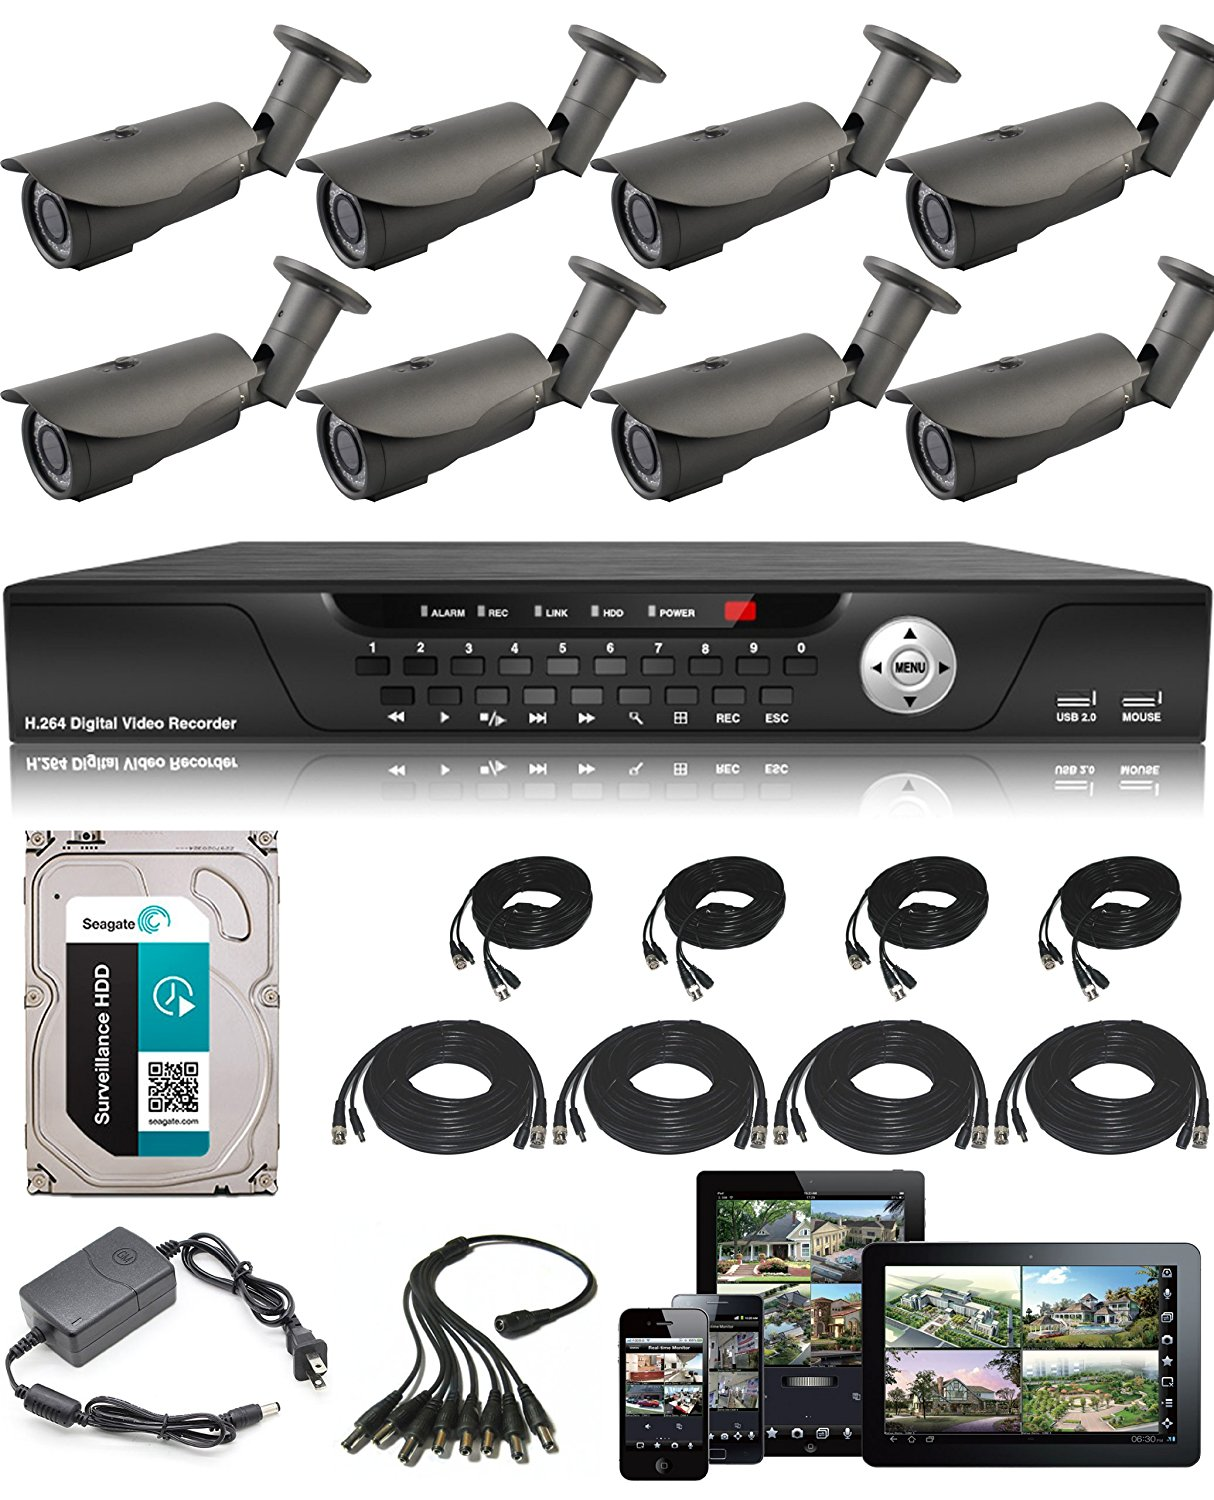 USG Business Grade CCTV Kit: 1x 16 Channel 960H DVR + 8x 2.8-12mm Bullet Cameras + 1x 2TB HDD + 8x BNC Video/DC Power Cables (65' + 100') + 1x Power Supply + 1x Splitter Complete CCTV Video Surveillance